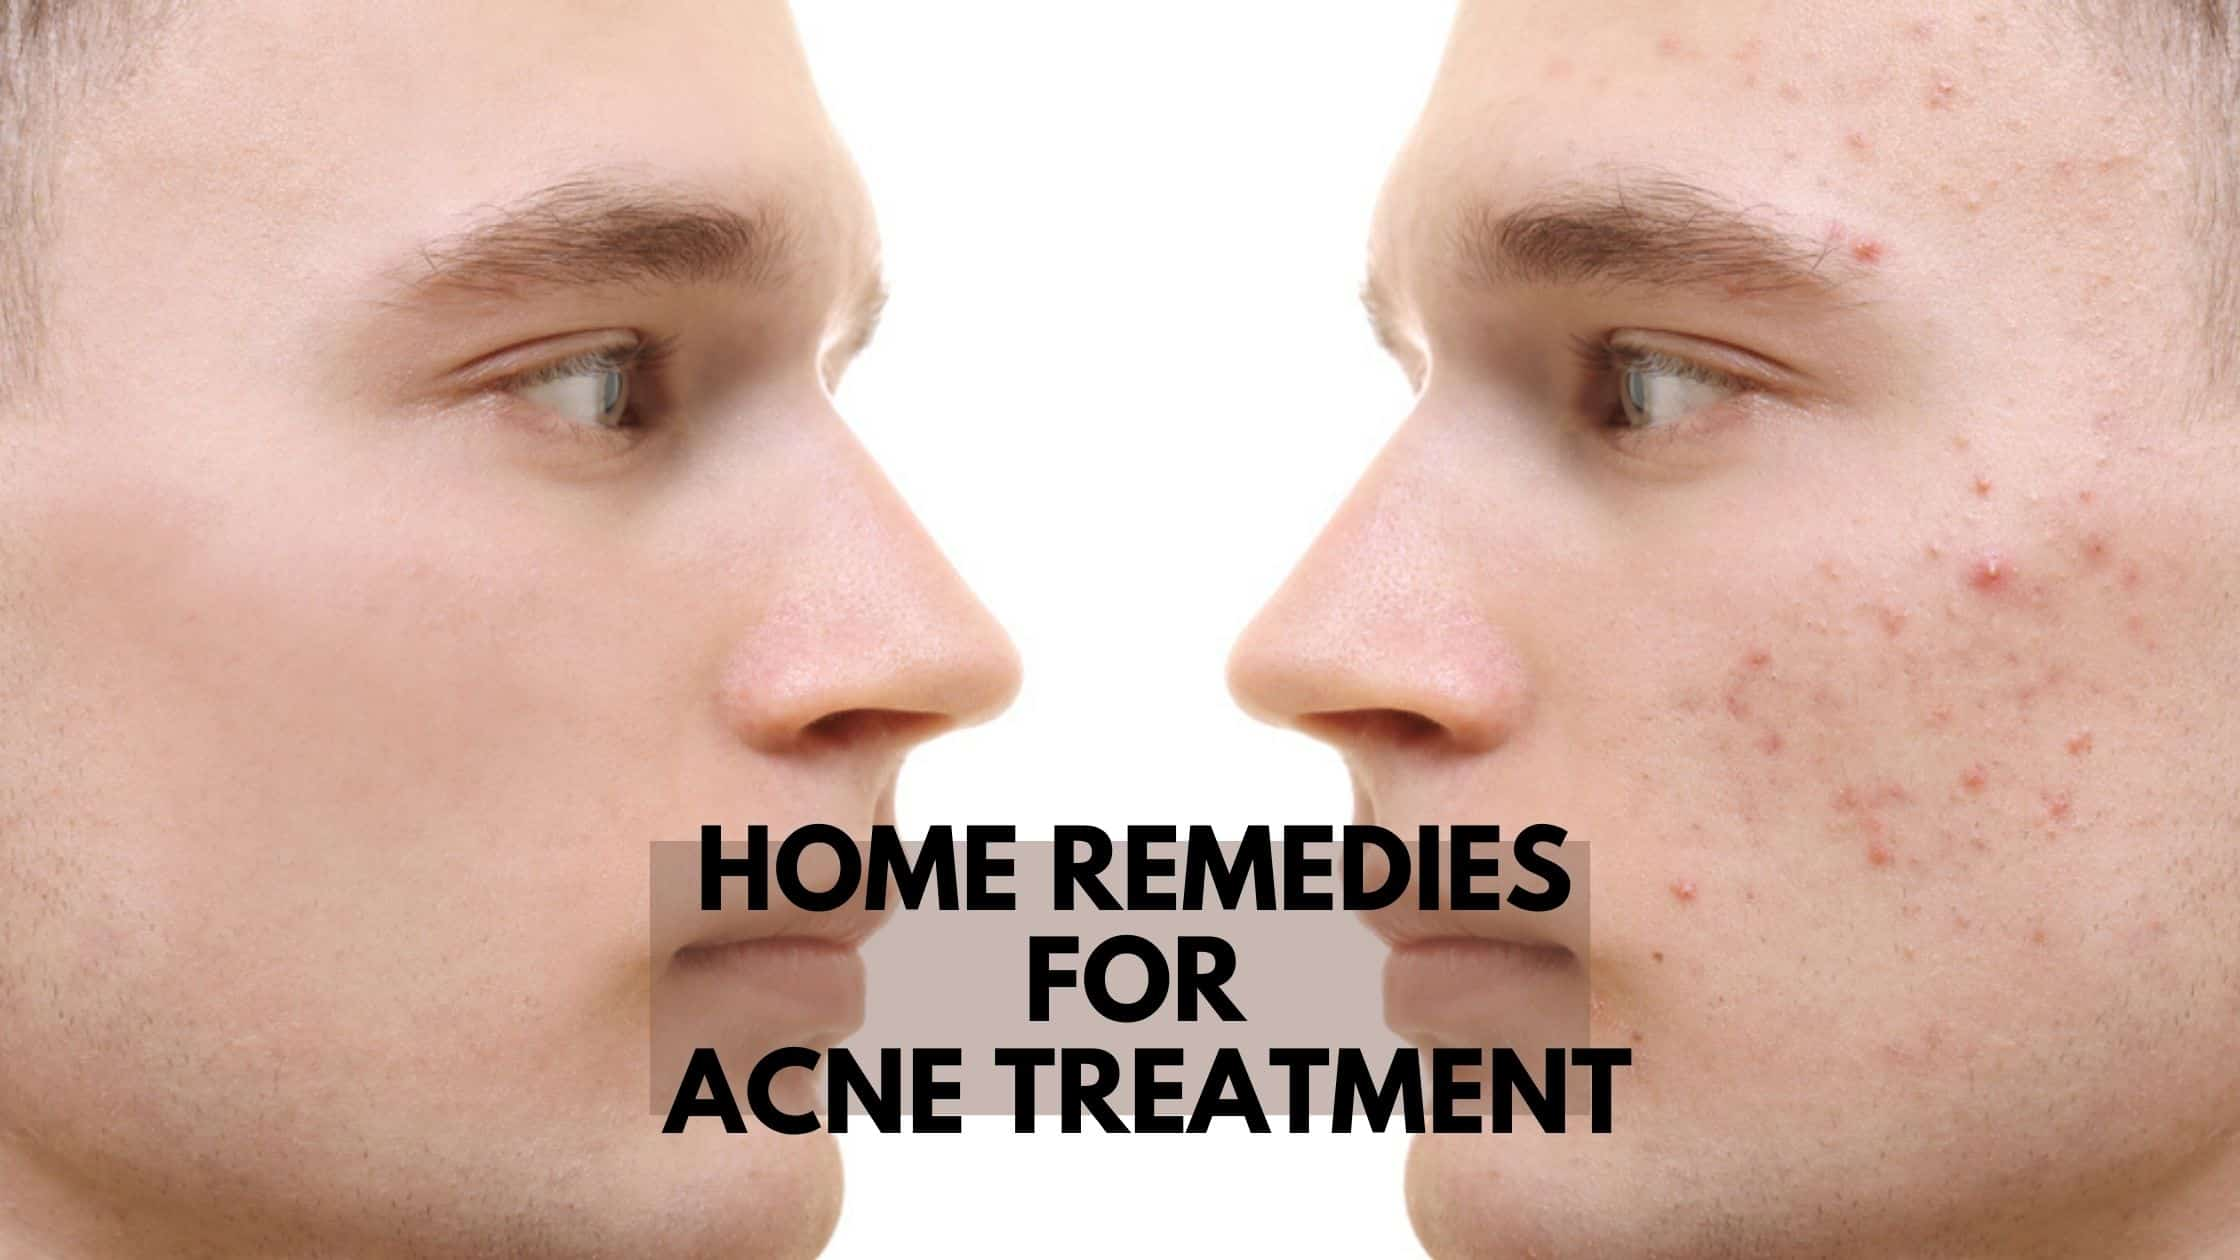 Clear Pimples At Home Naturally Top 8 Home Remedies For Acne